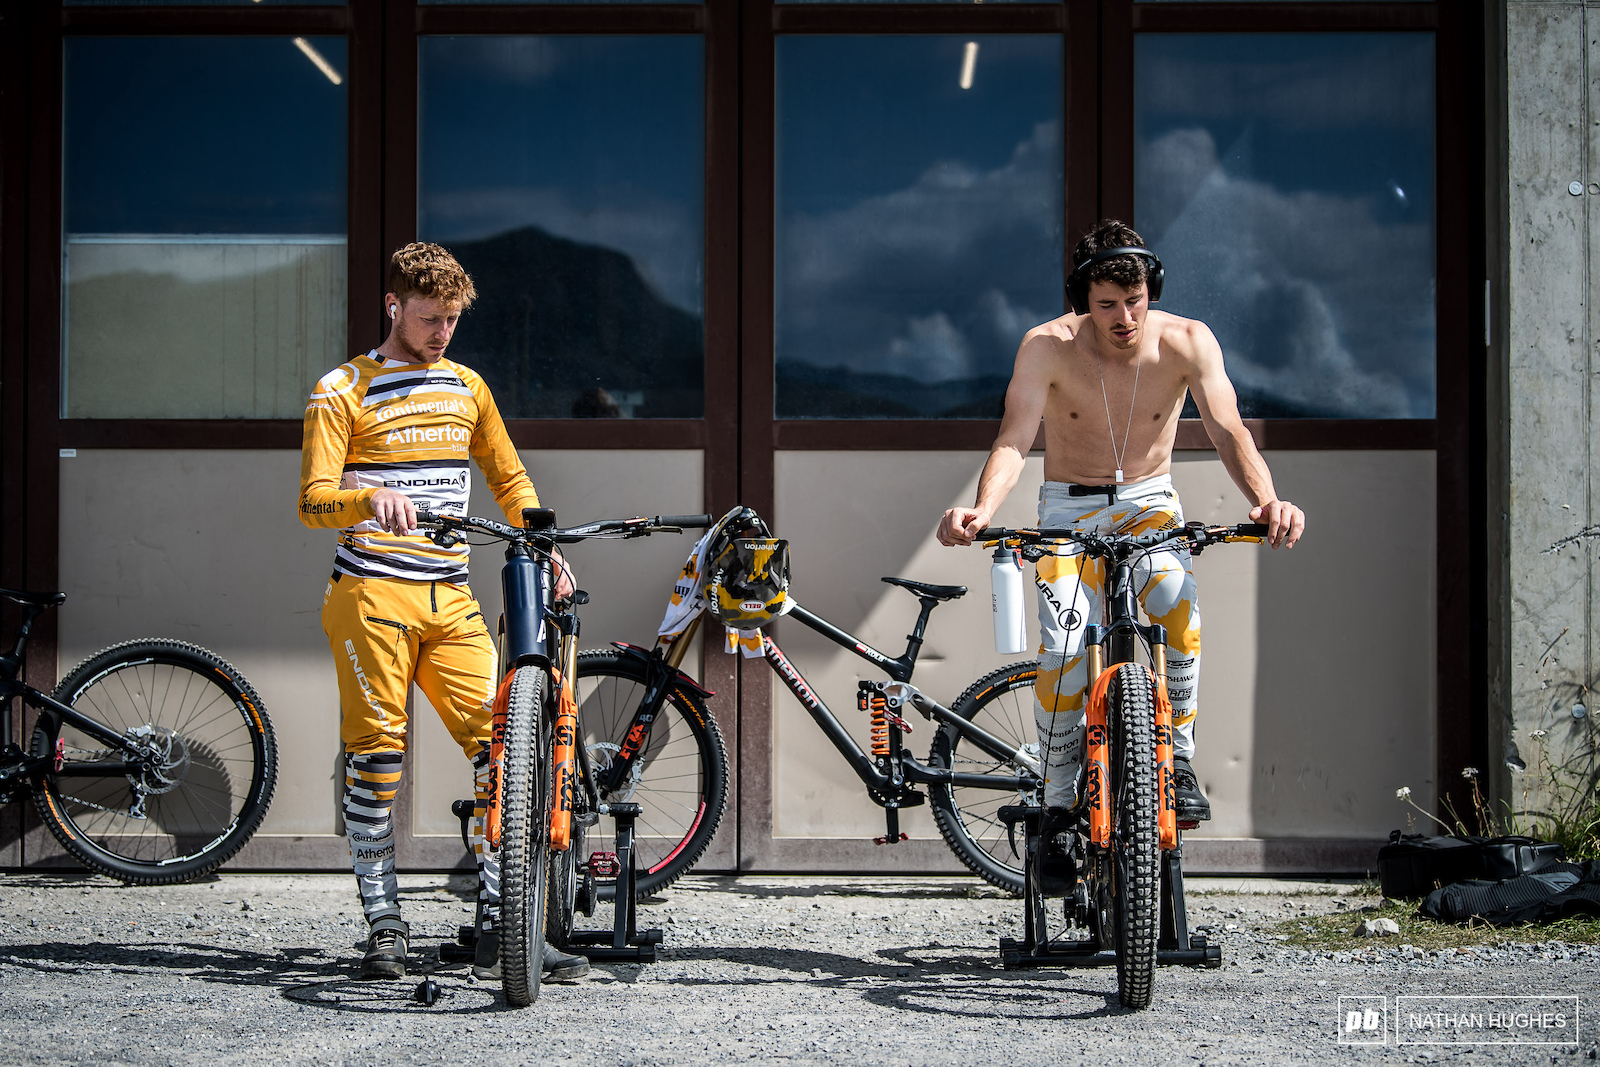 Dan and Gee Atherton get ready for work on this fine and sunny day.